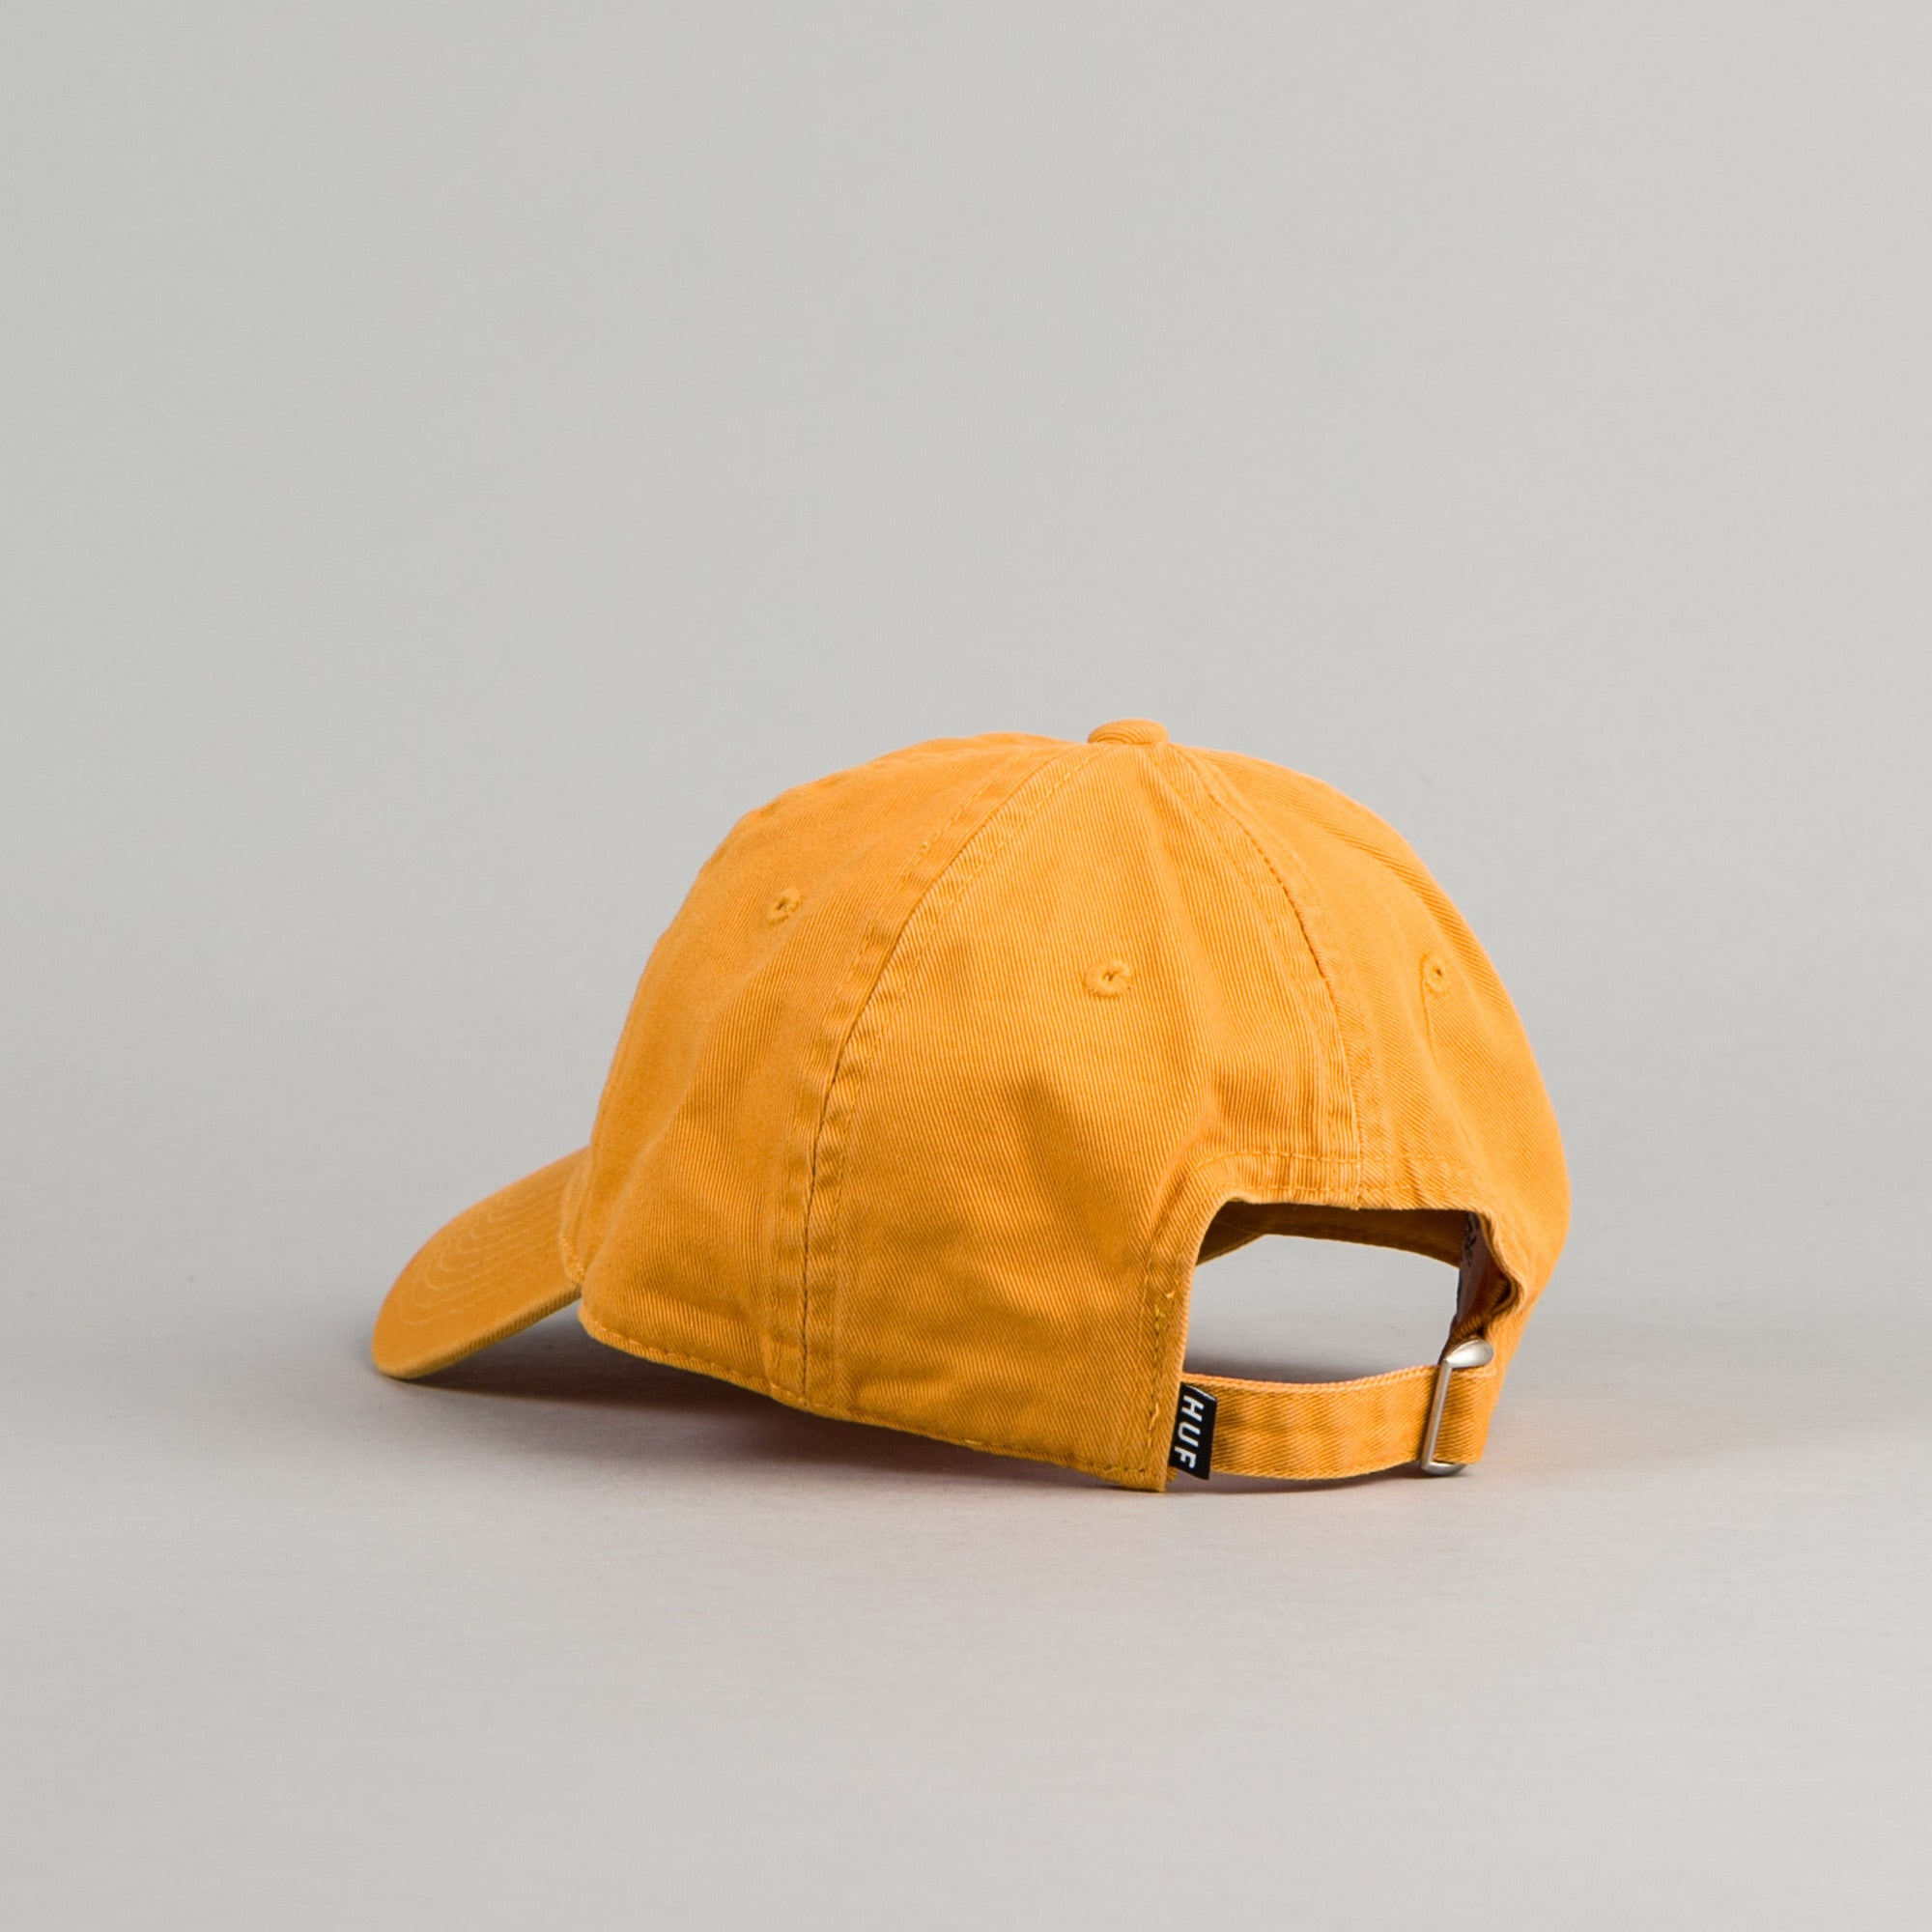 HUF Spike 8 Ball Cap - Gold